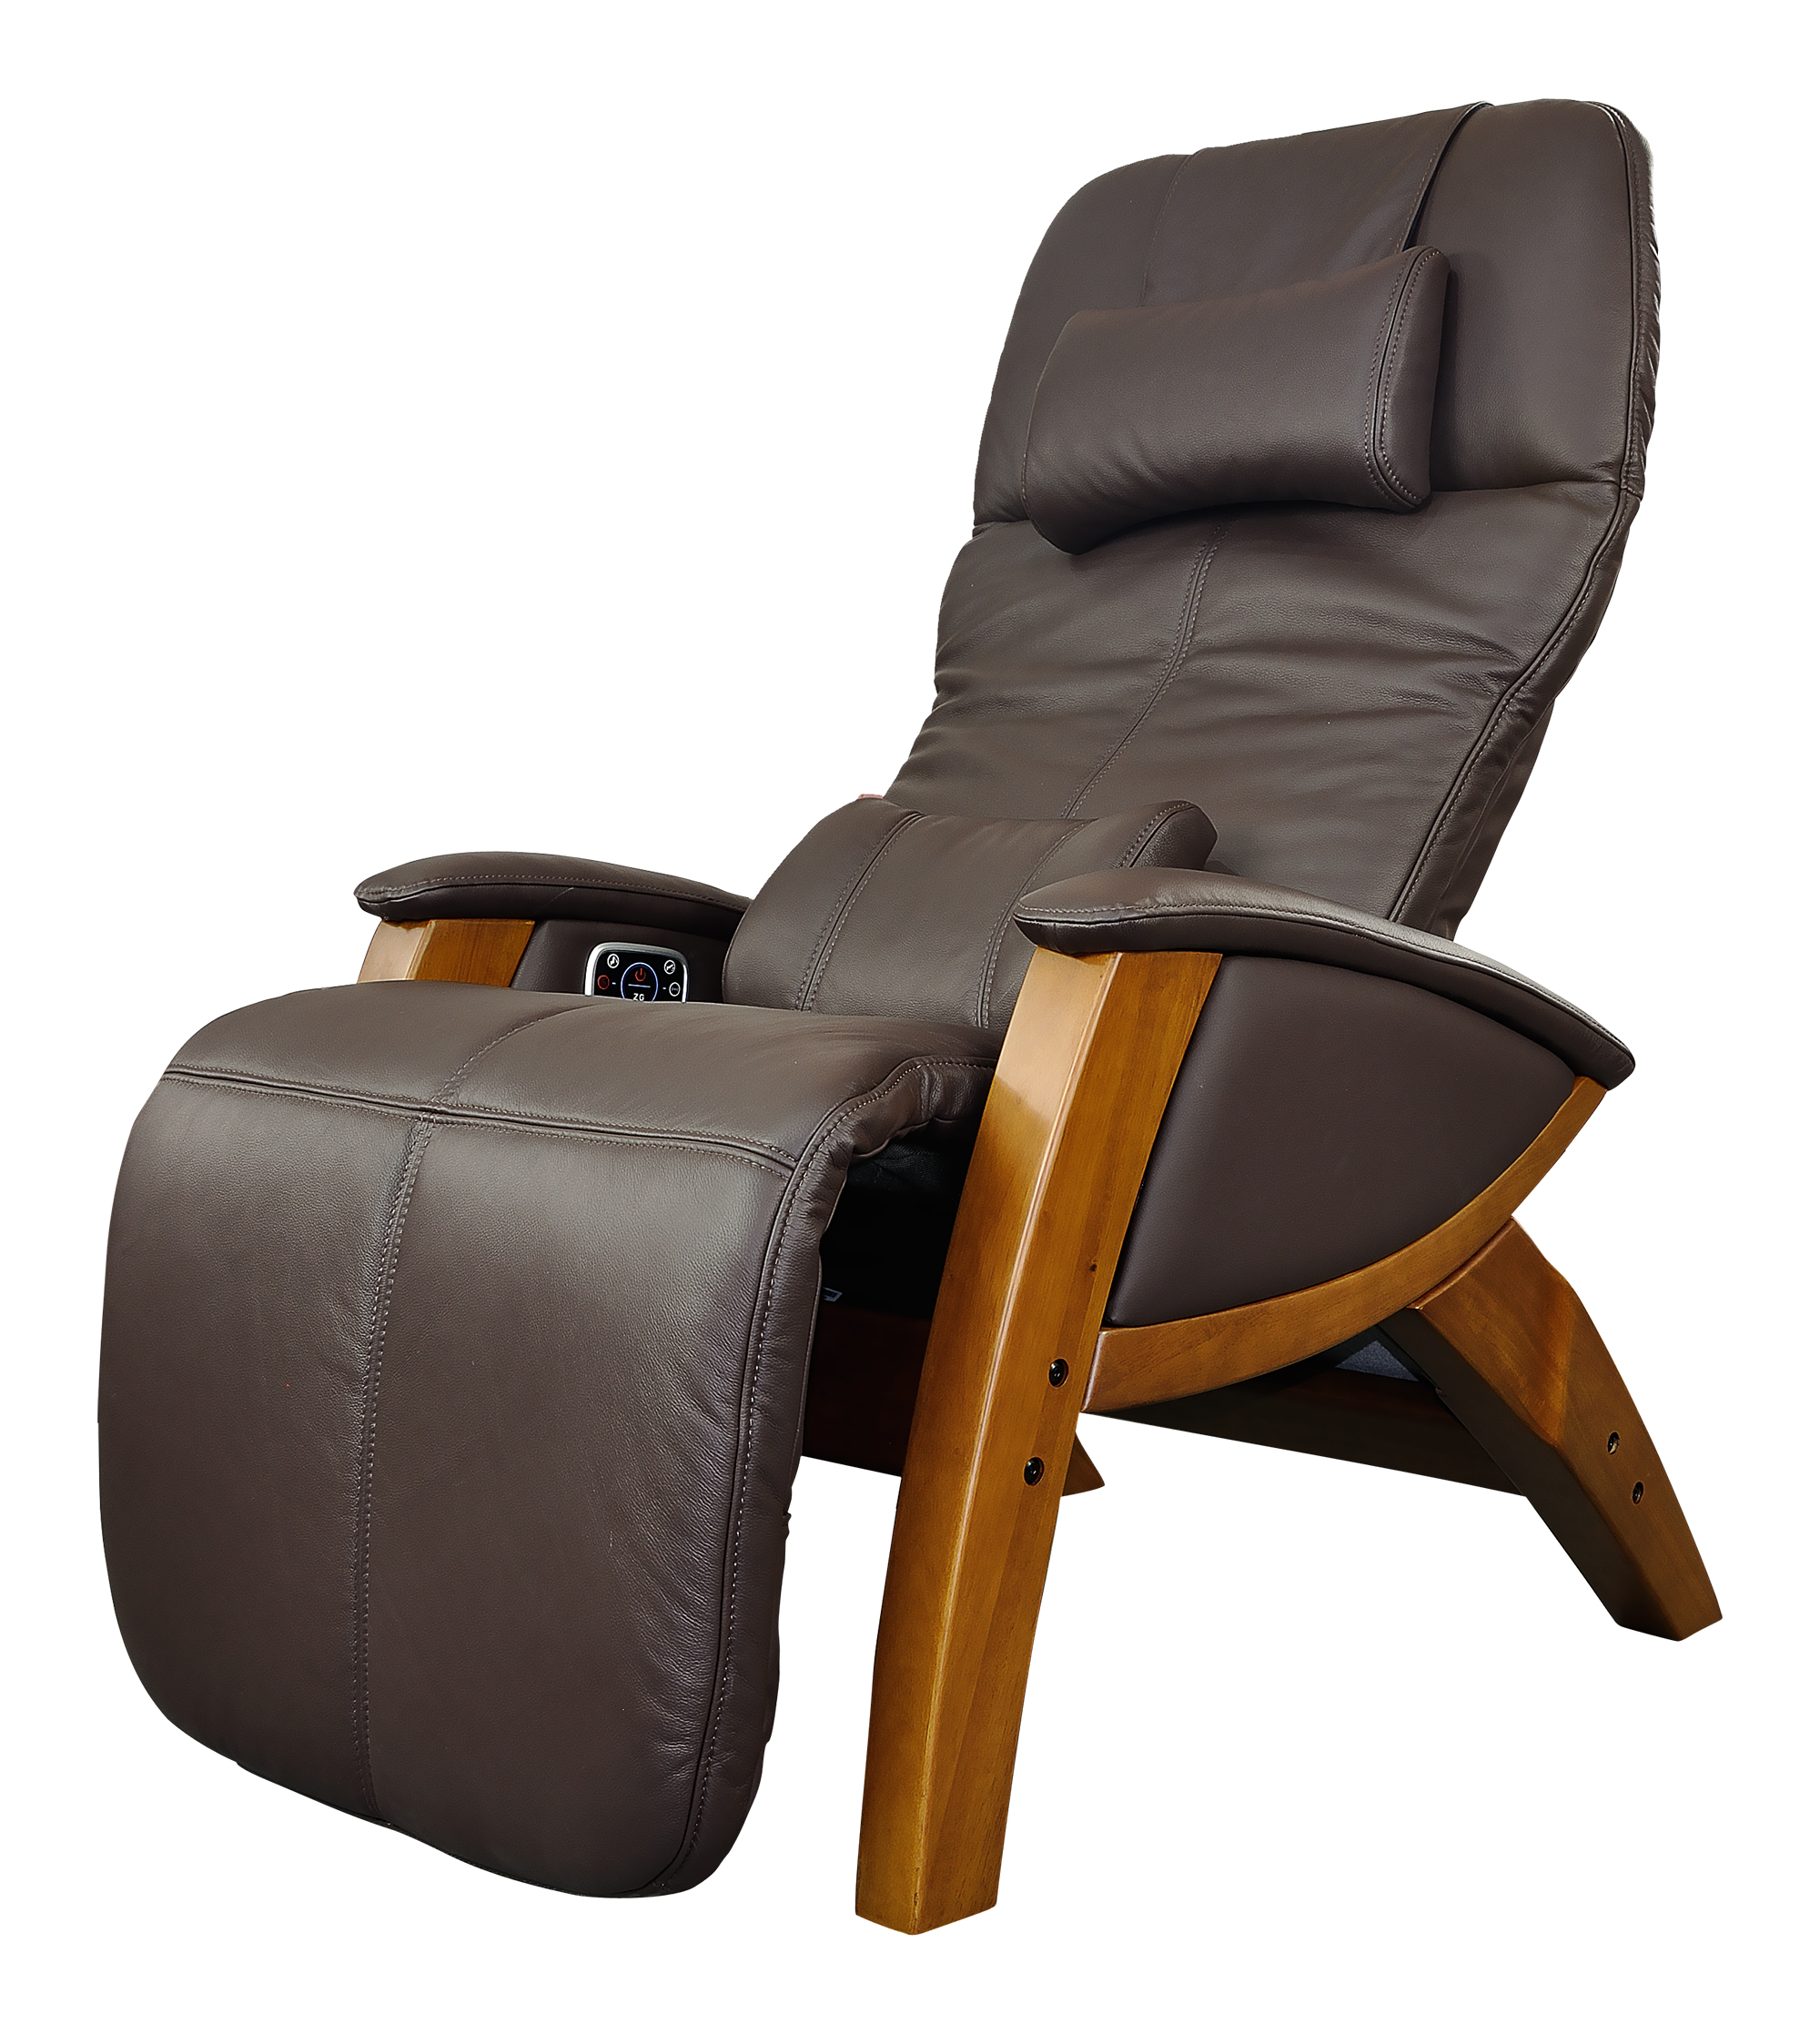 Patio Reclining Chair Patio Reclining Chair Ivory Leather